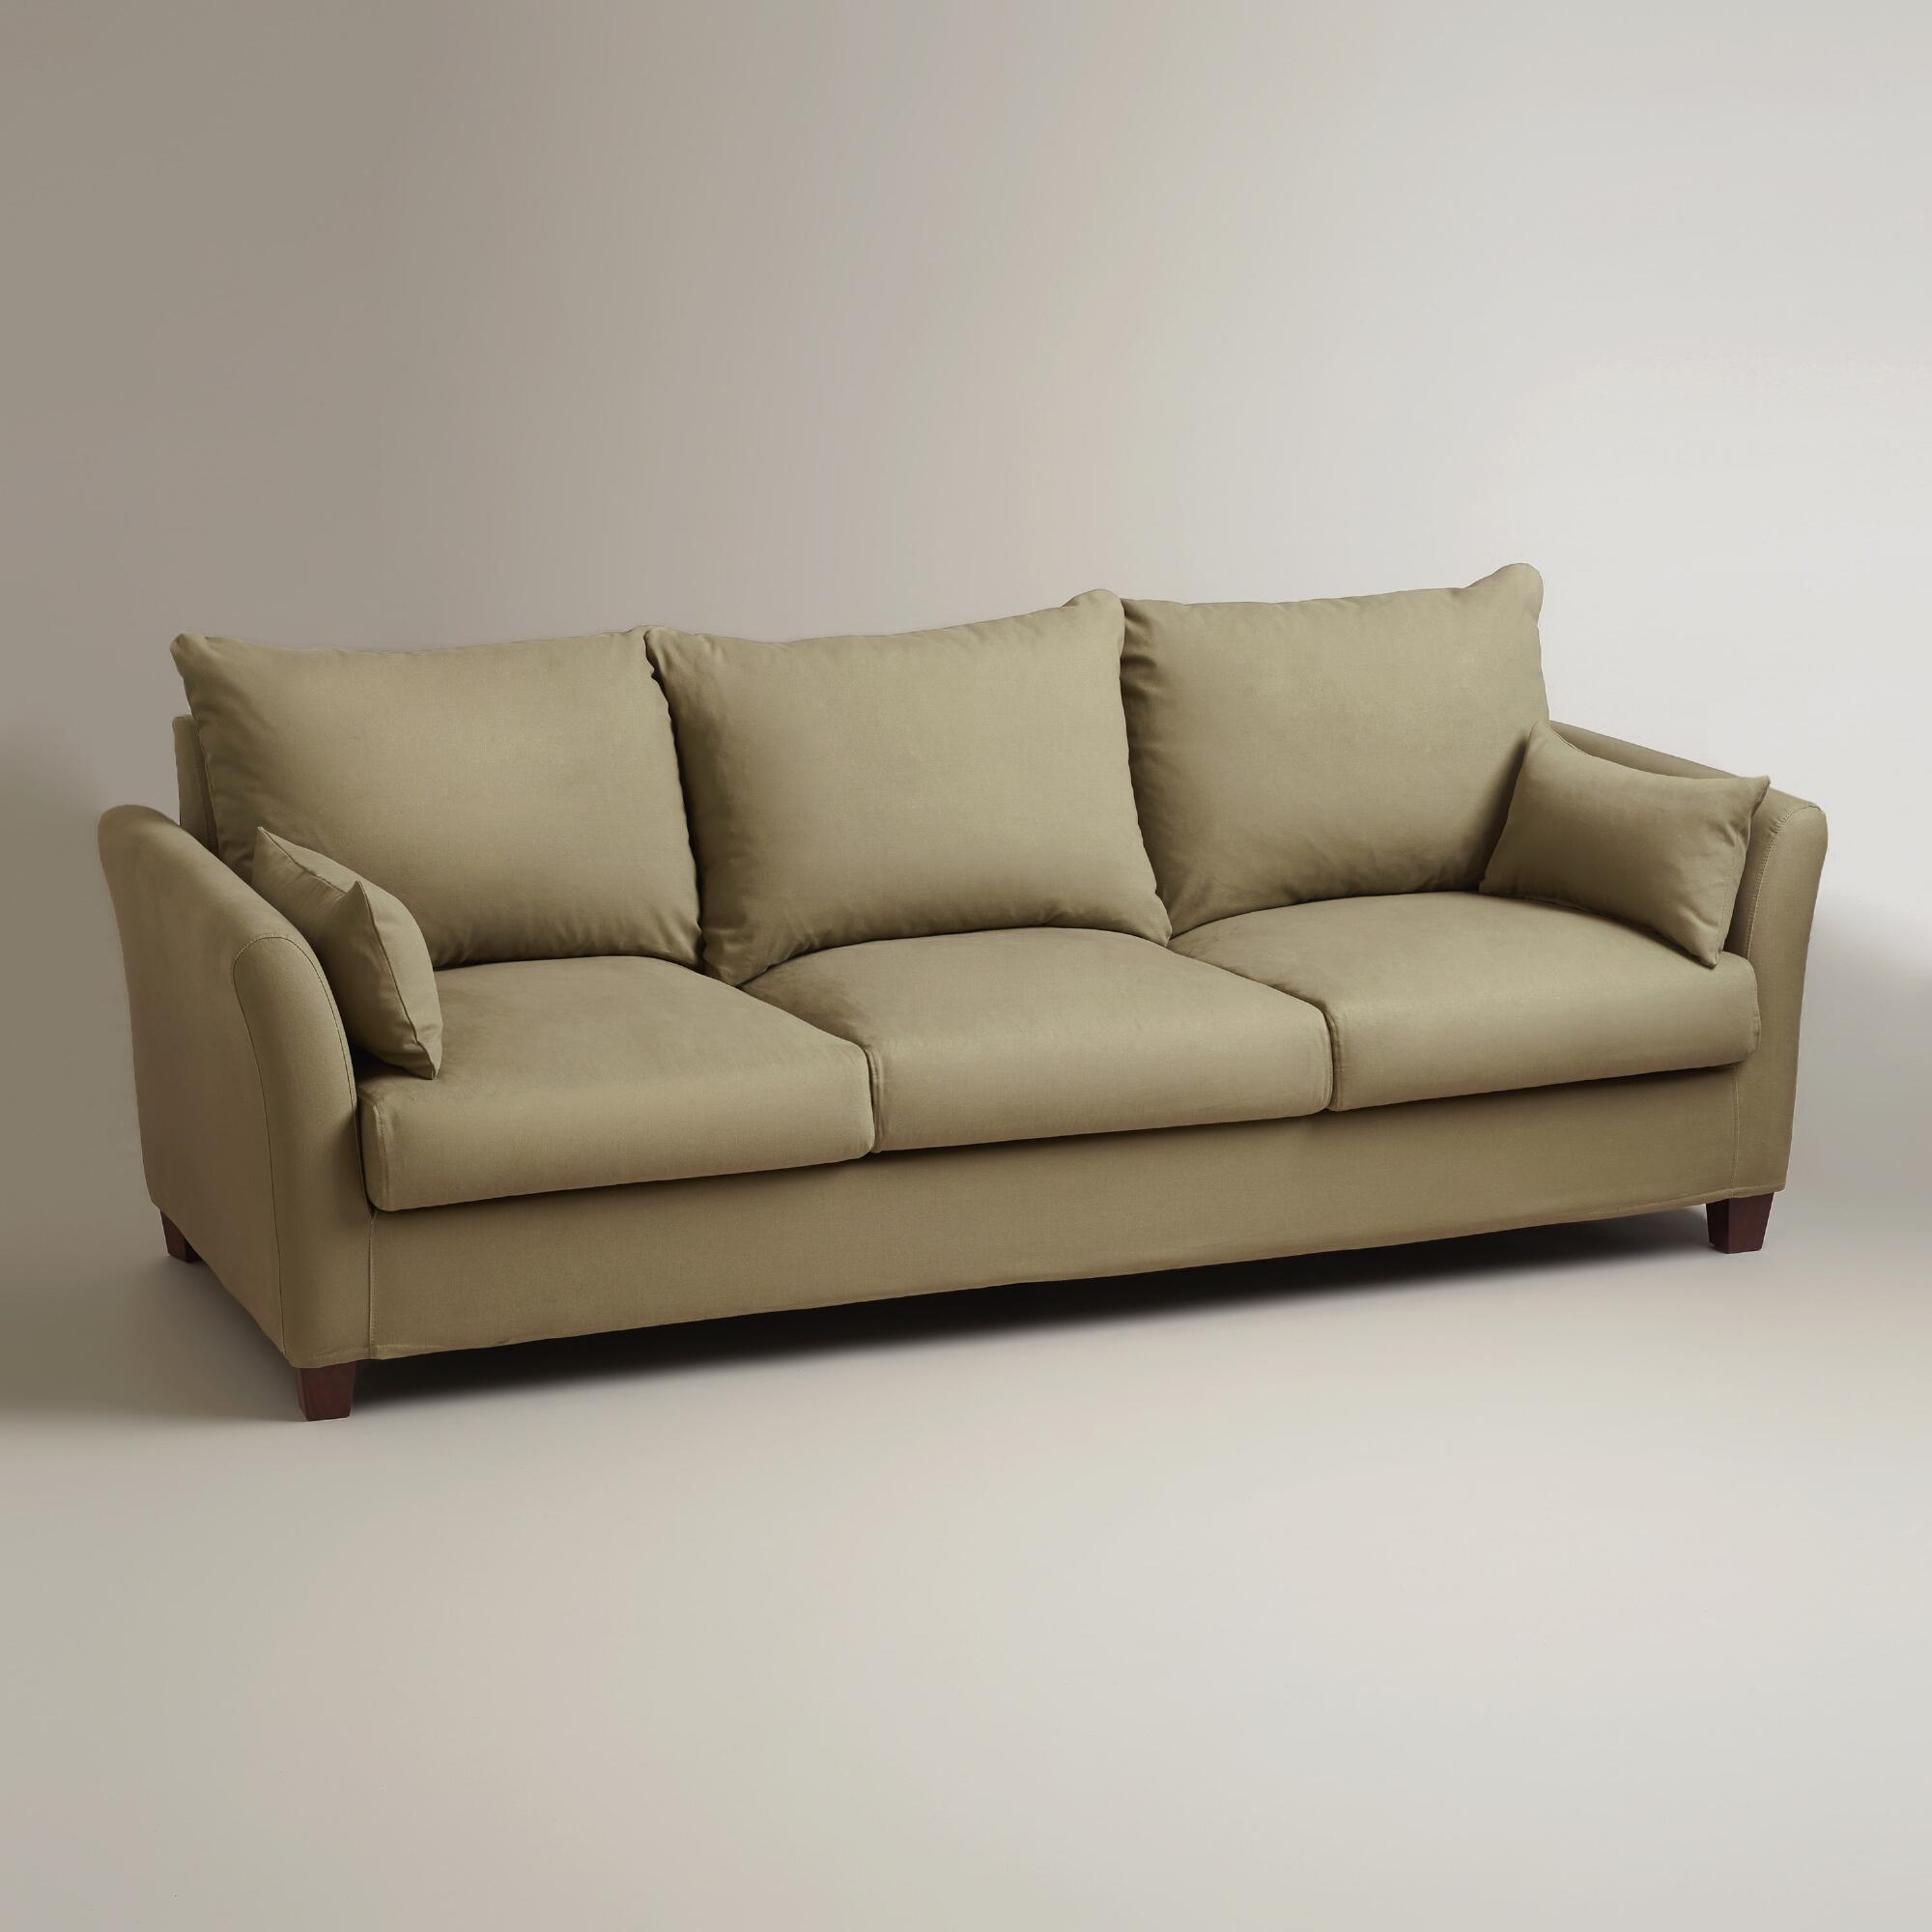 3 Seat Sofa Slipcover Sure Fit Stretch Piqu 3 Seat